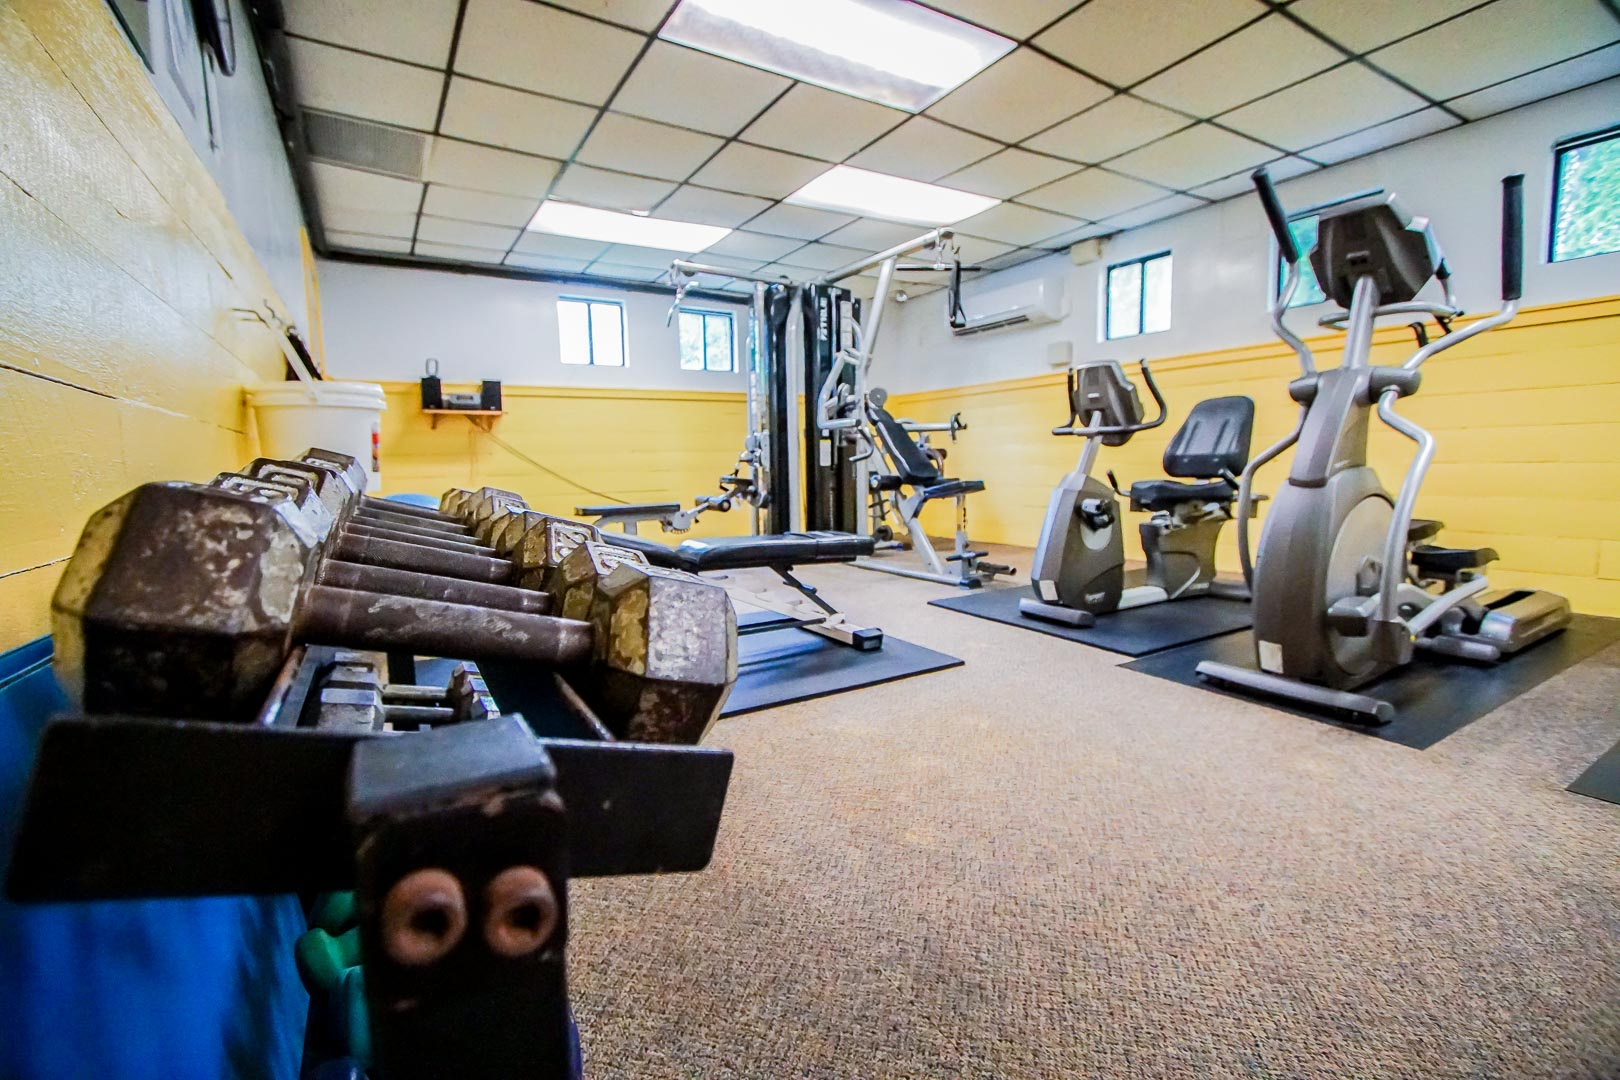 Resort amenities such as an exercise room available at VRI's Sea Mist Resort in Massachusetts.